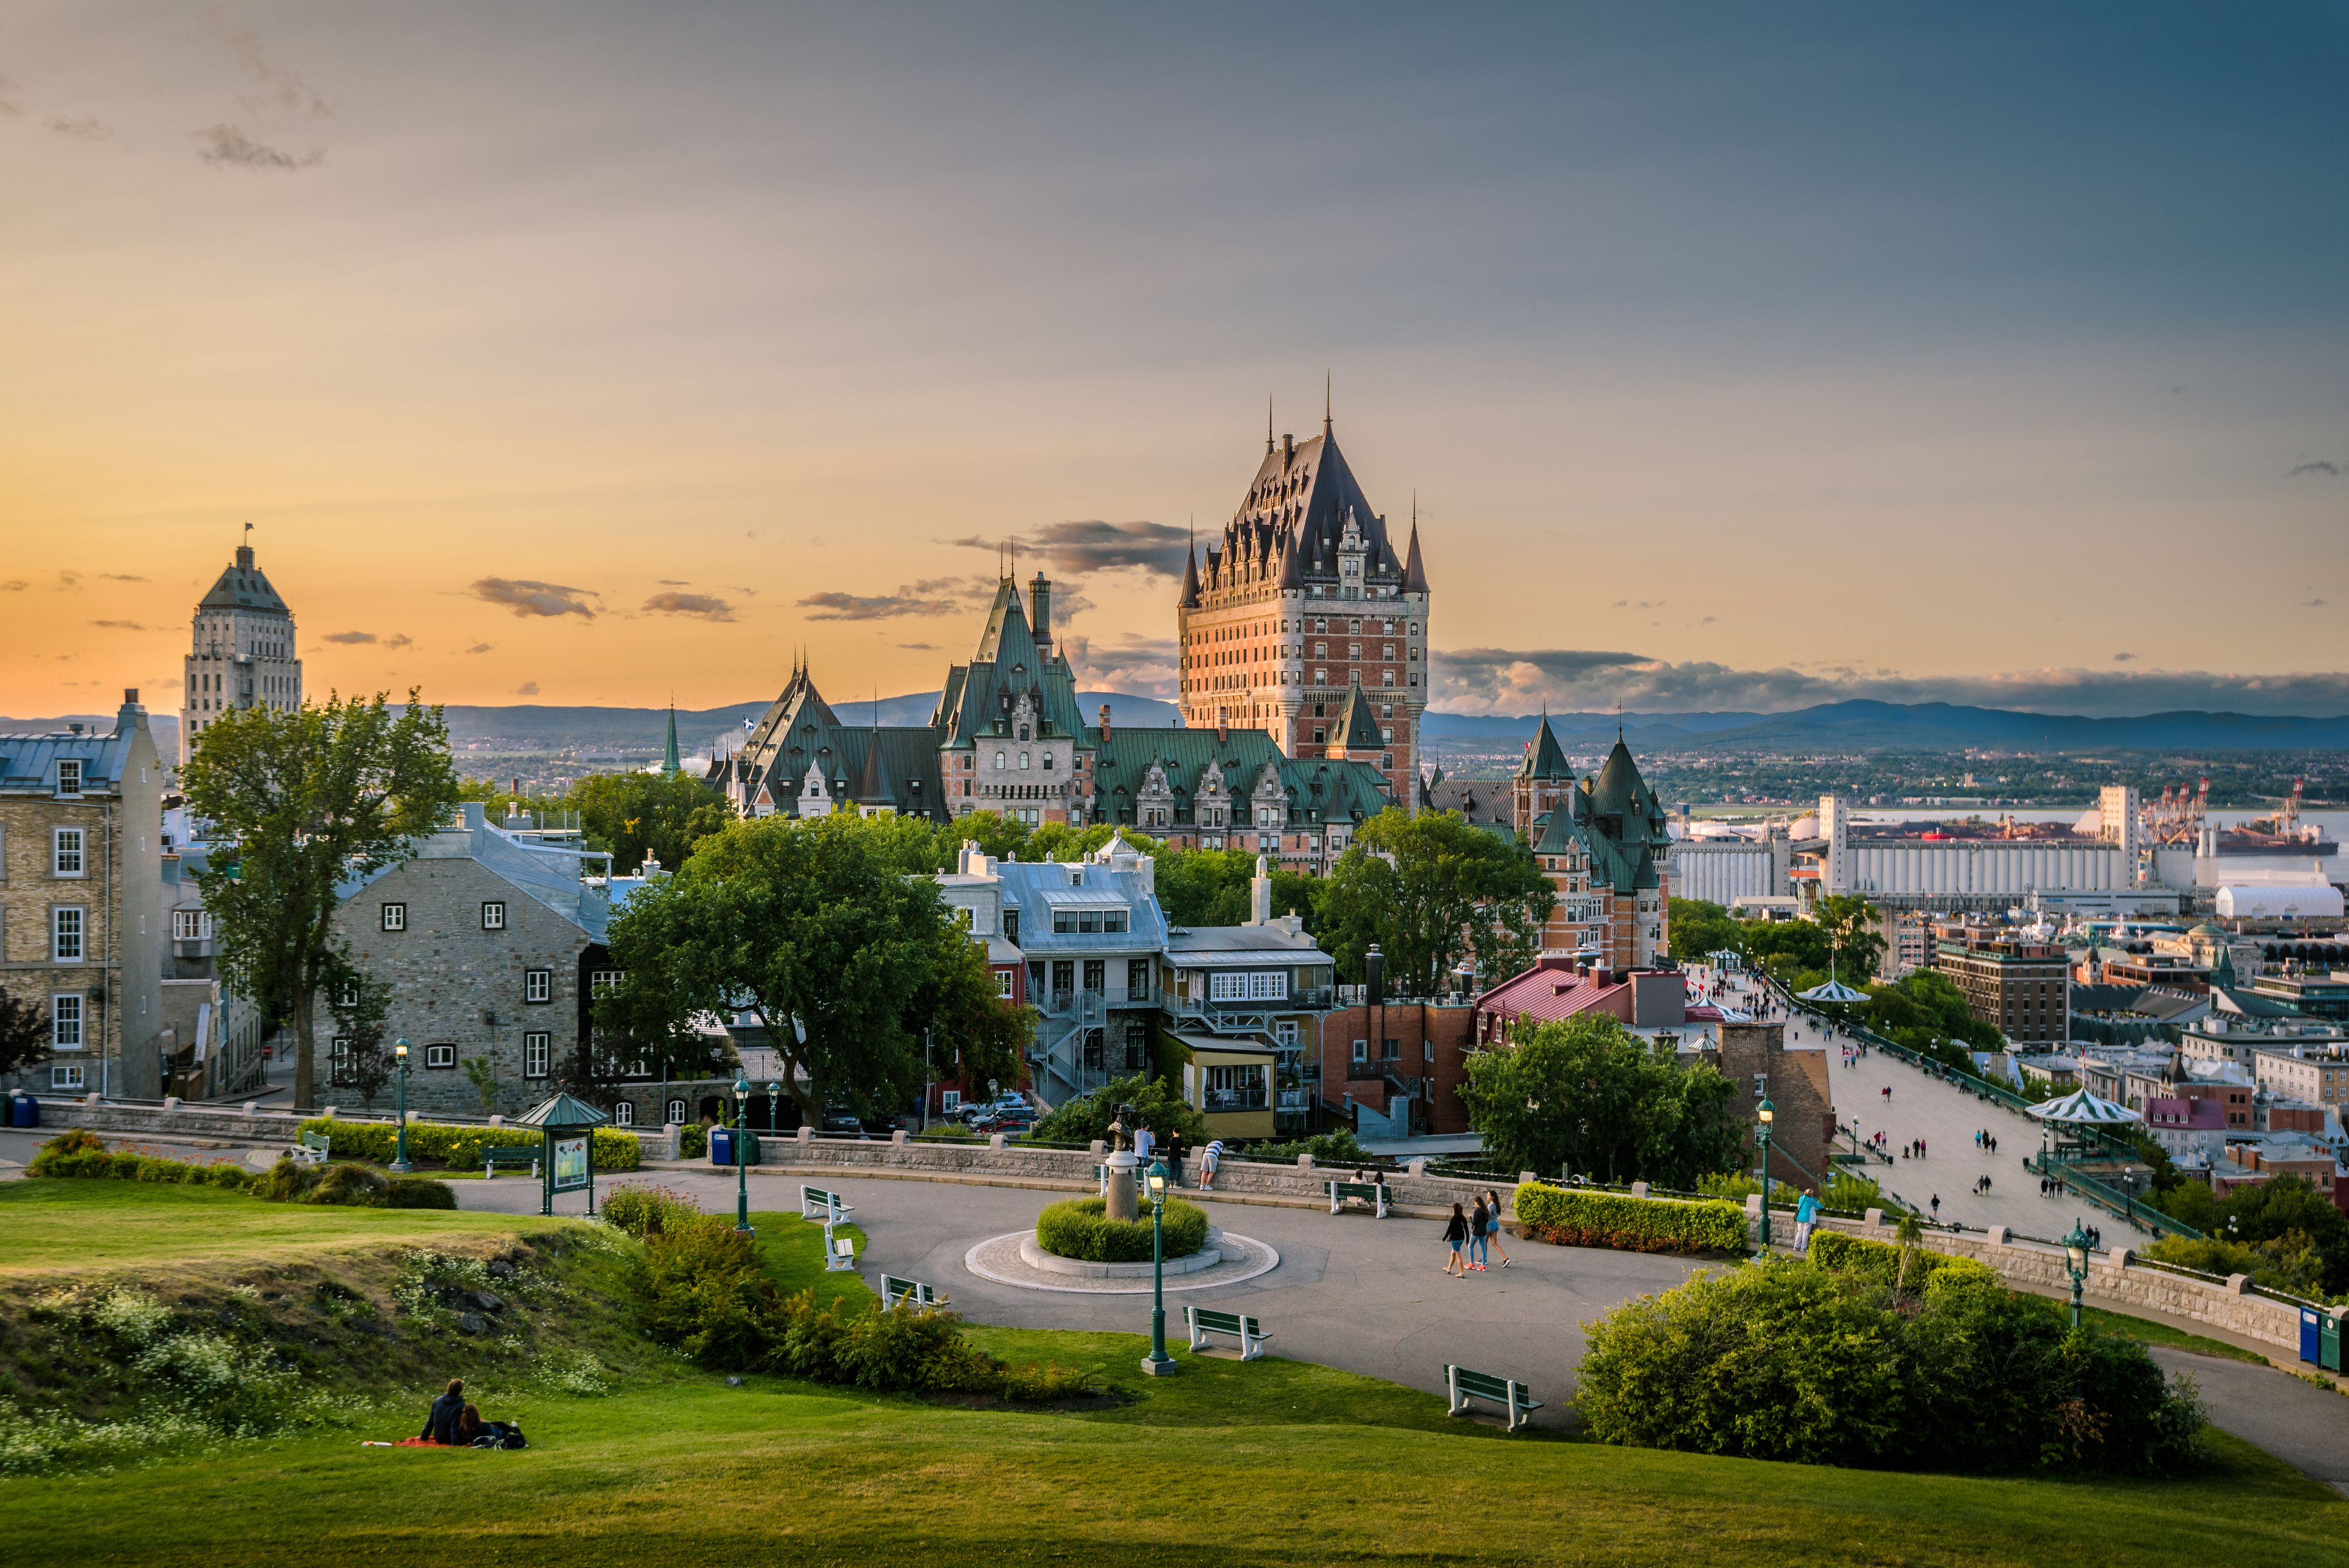 Best Times to Visit Quebec City, Canada Travel Guide on nova scotia, saguenay–lac-saint-jean, la malbaie, les Îles-de-la-madeleine, quebec, ville-marie, montreal, old quebec, niagara falls, nord-du-québec, prince edward island, montréal-est, british columbia, trois-rivières, le plateau-mont-royal, saint-laurent, quebec, samuel de champlain, new france, saint-jérôme, rivière-du-loup, côte-nord, quebec city, lennoxville, quebec,